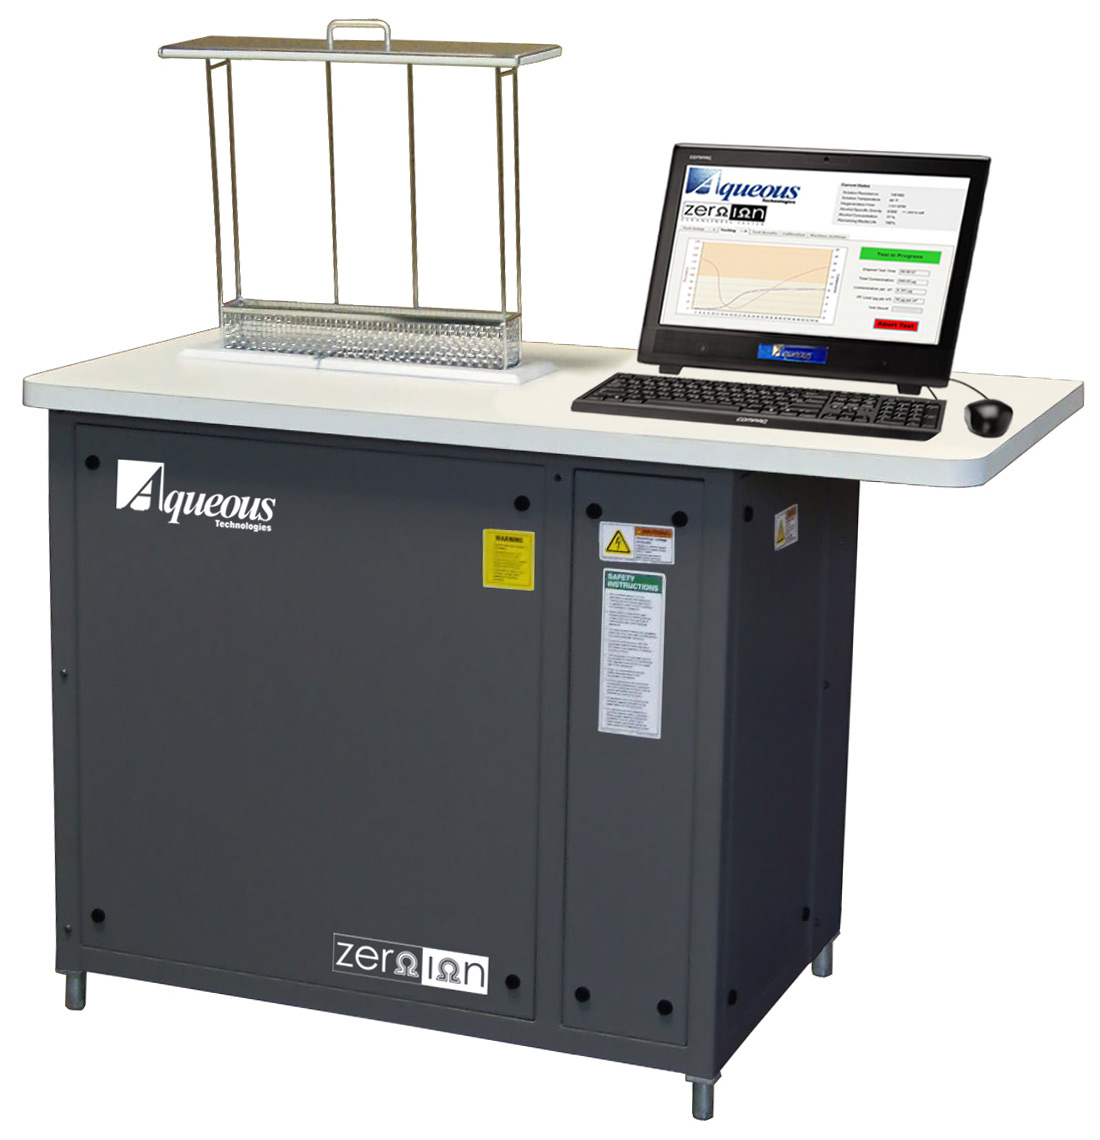 Electronic Tester Job Description : Zero ion g ionic contamination cleanliness tester